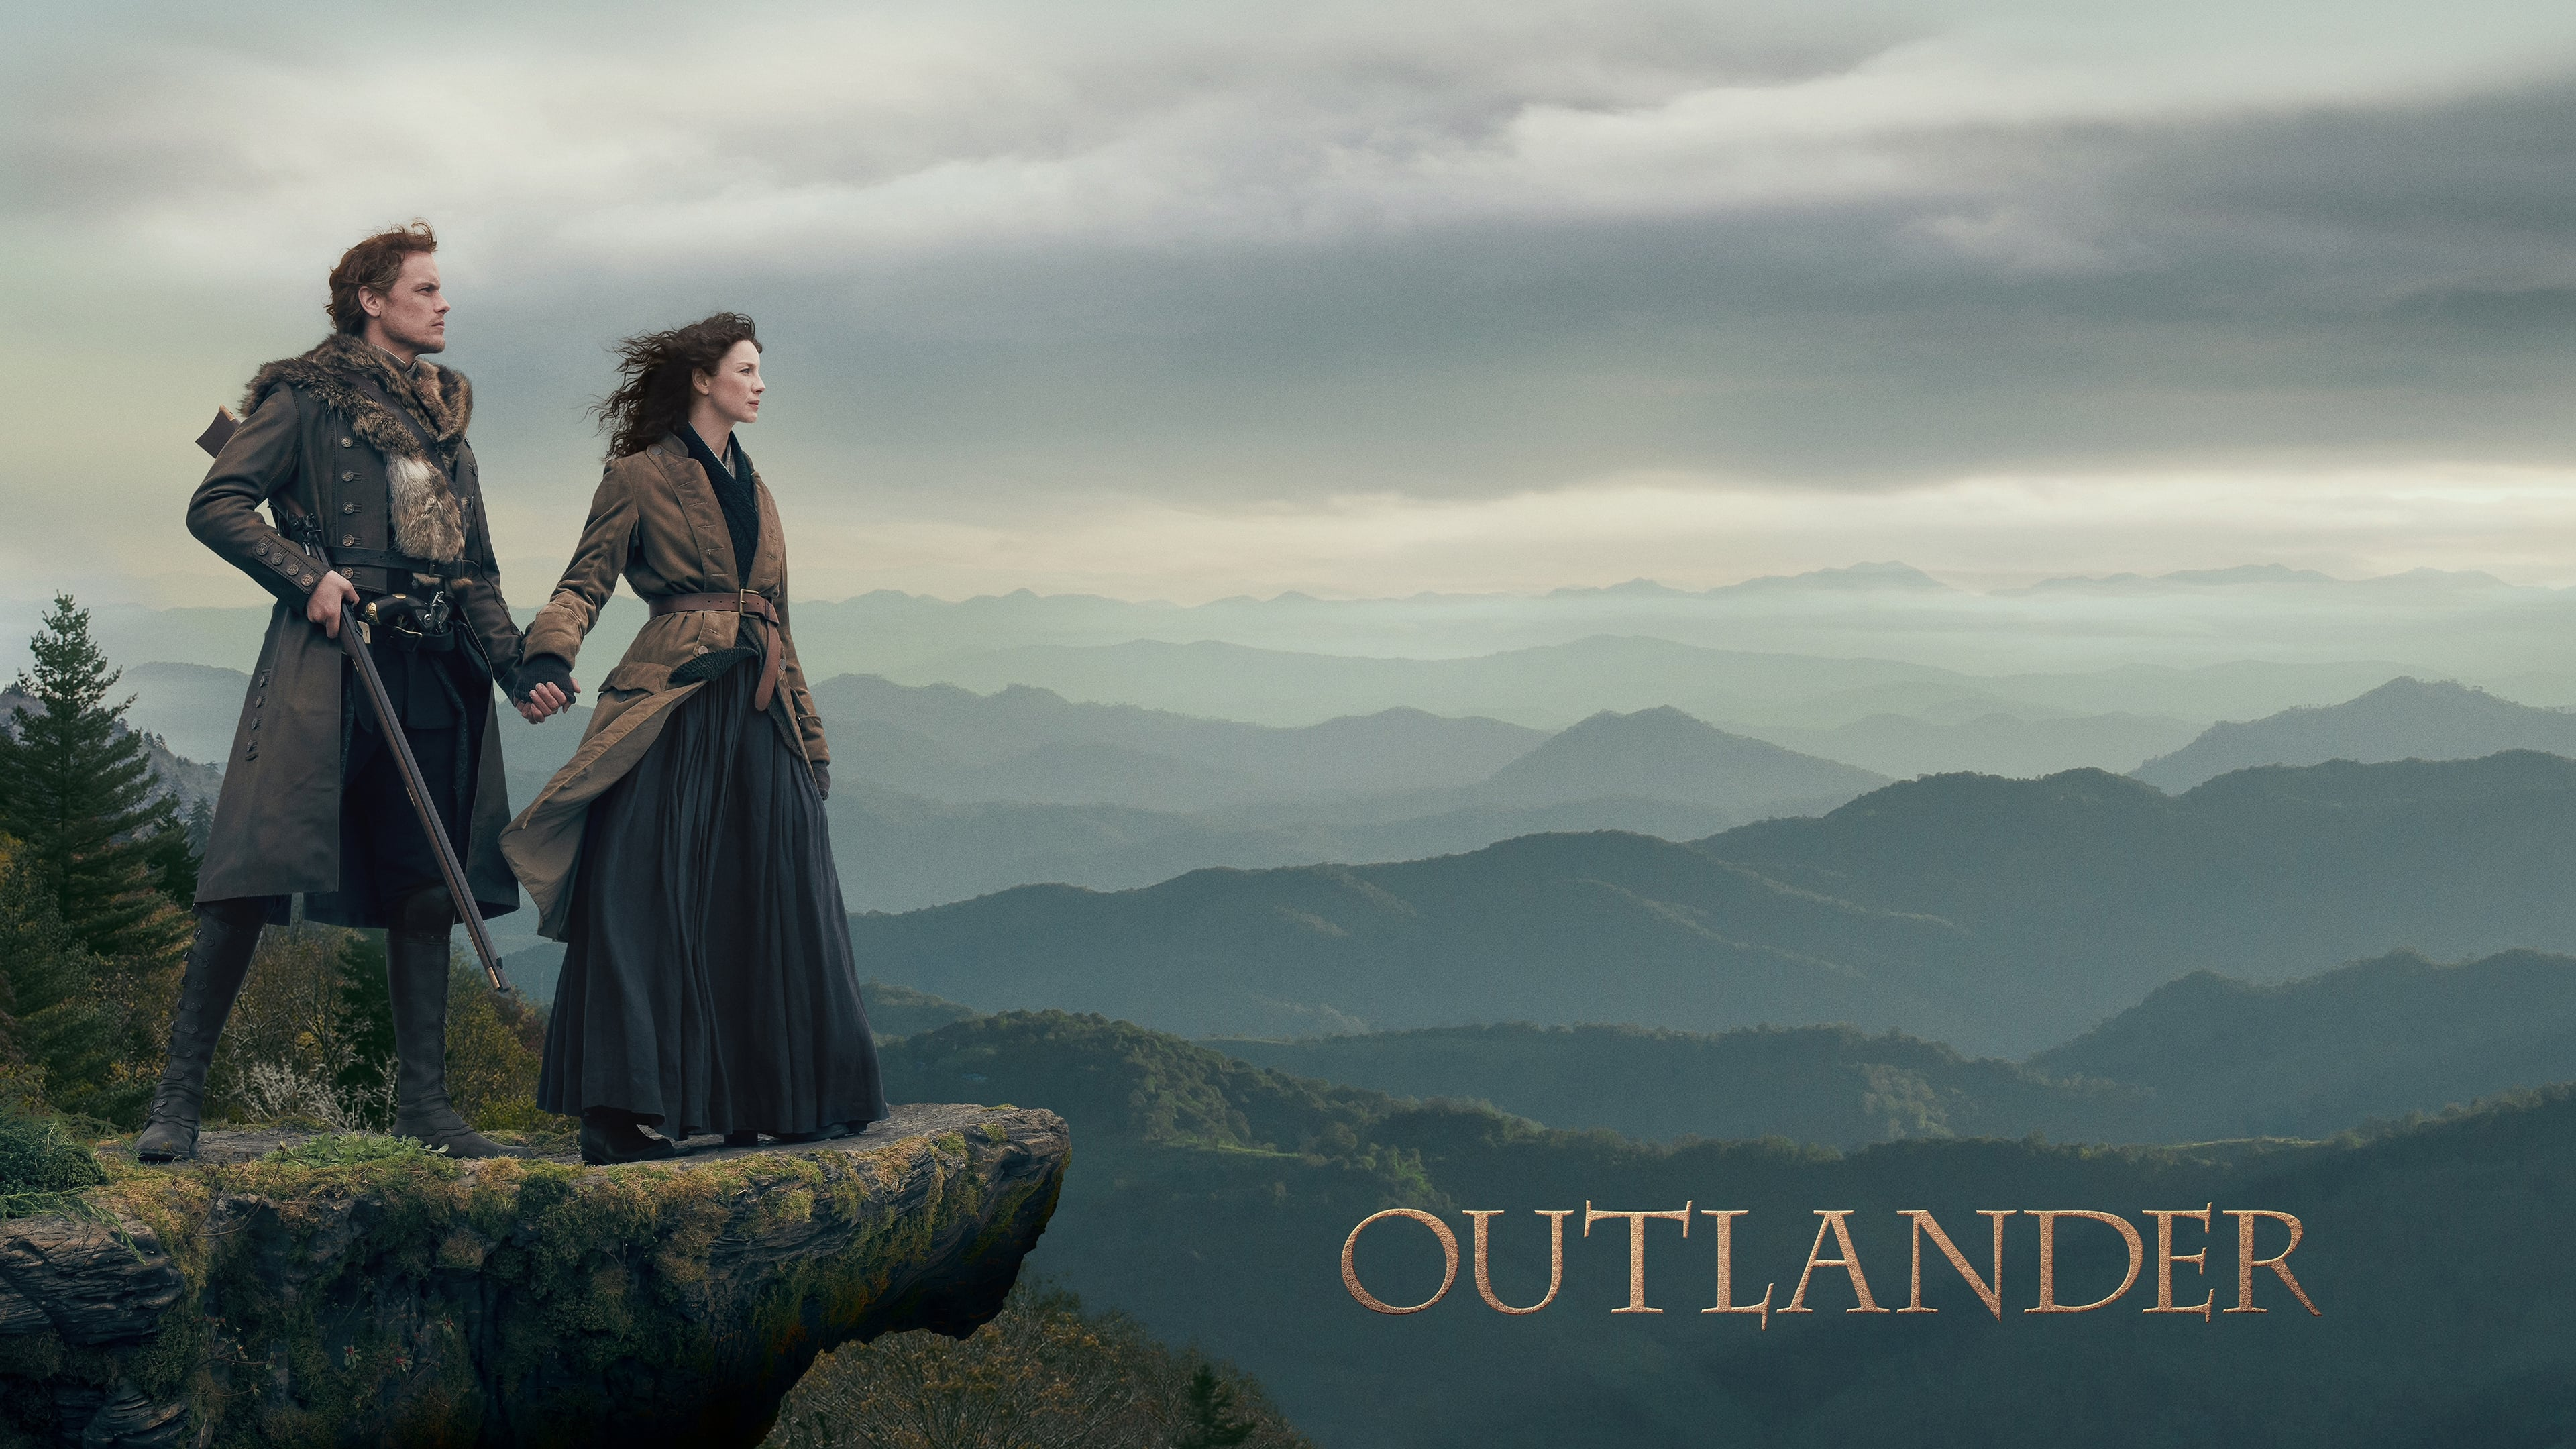 A seventh season for Outlander